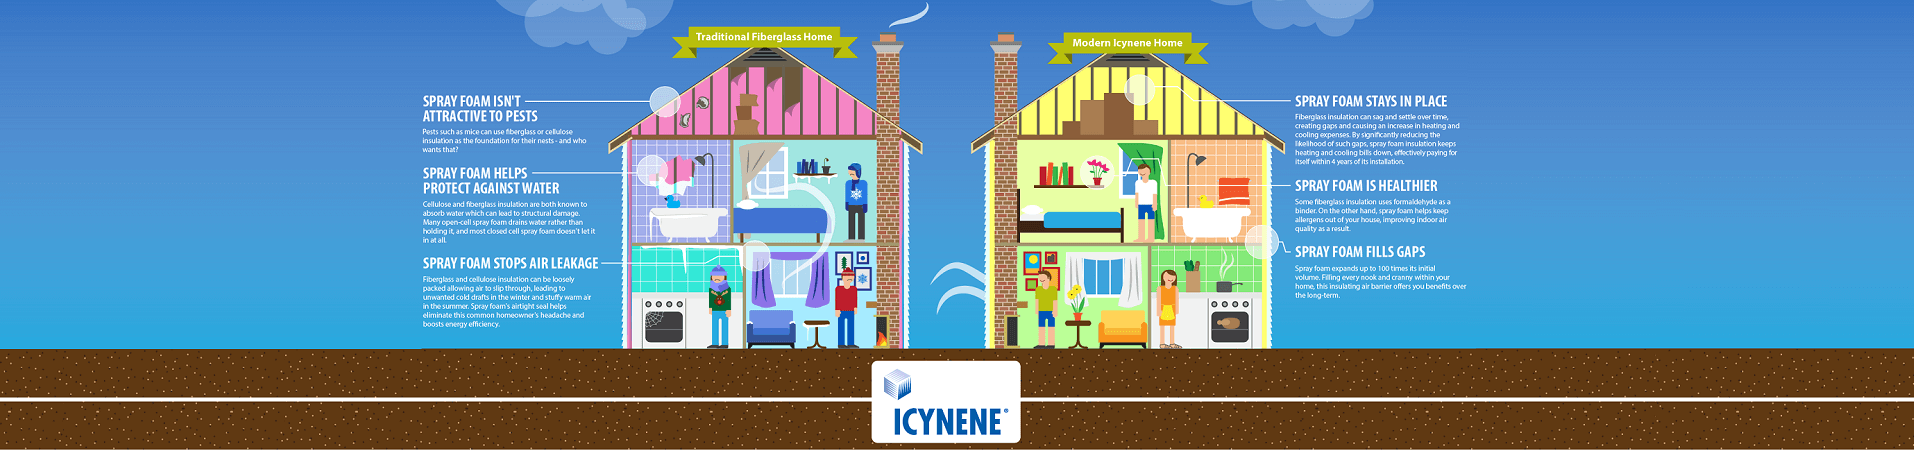 Icynene Spray Foam Insulation Infographic